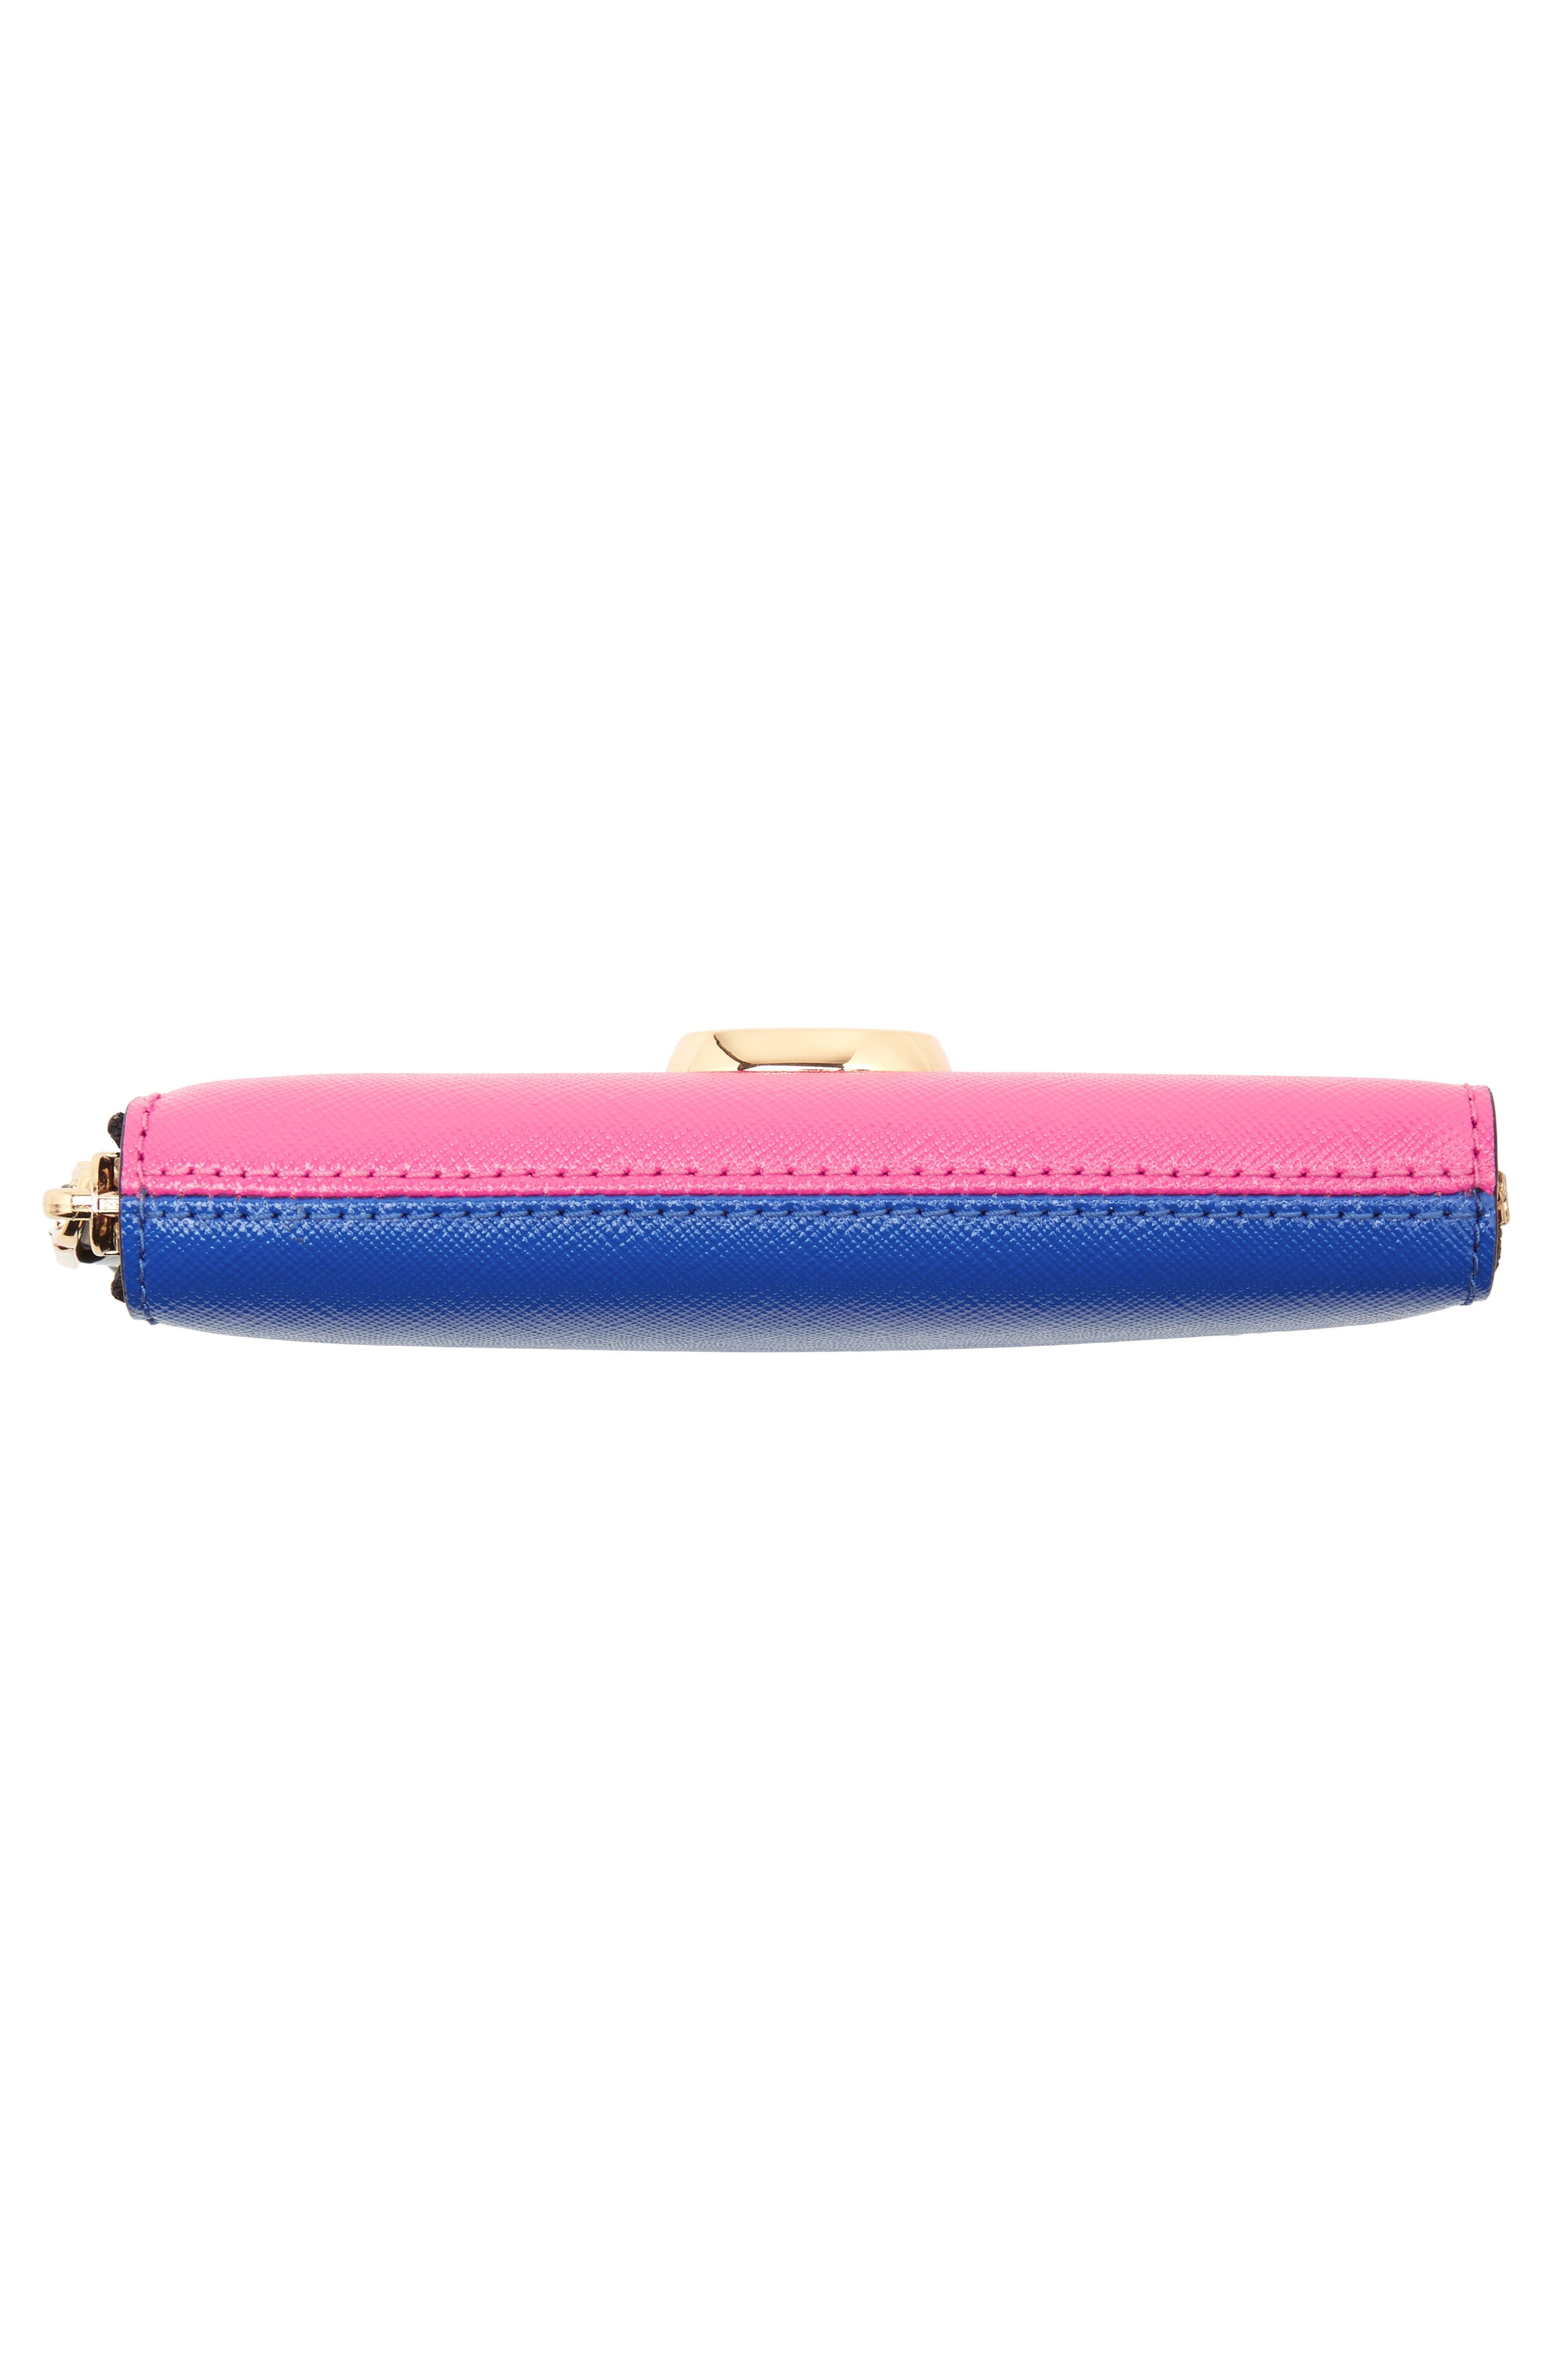 Small Snapshot Leather Zip-Around Wallet,                             Alternate thumbnail 6, color,                             Vivid Pink Multi